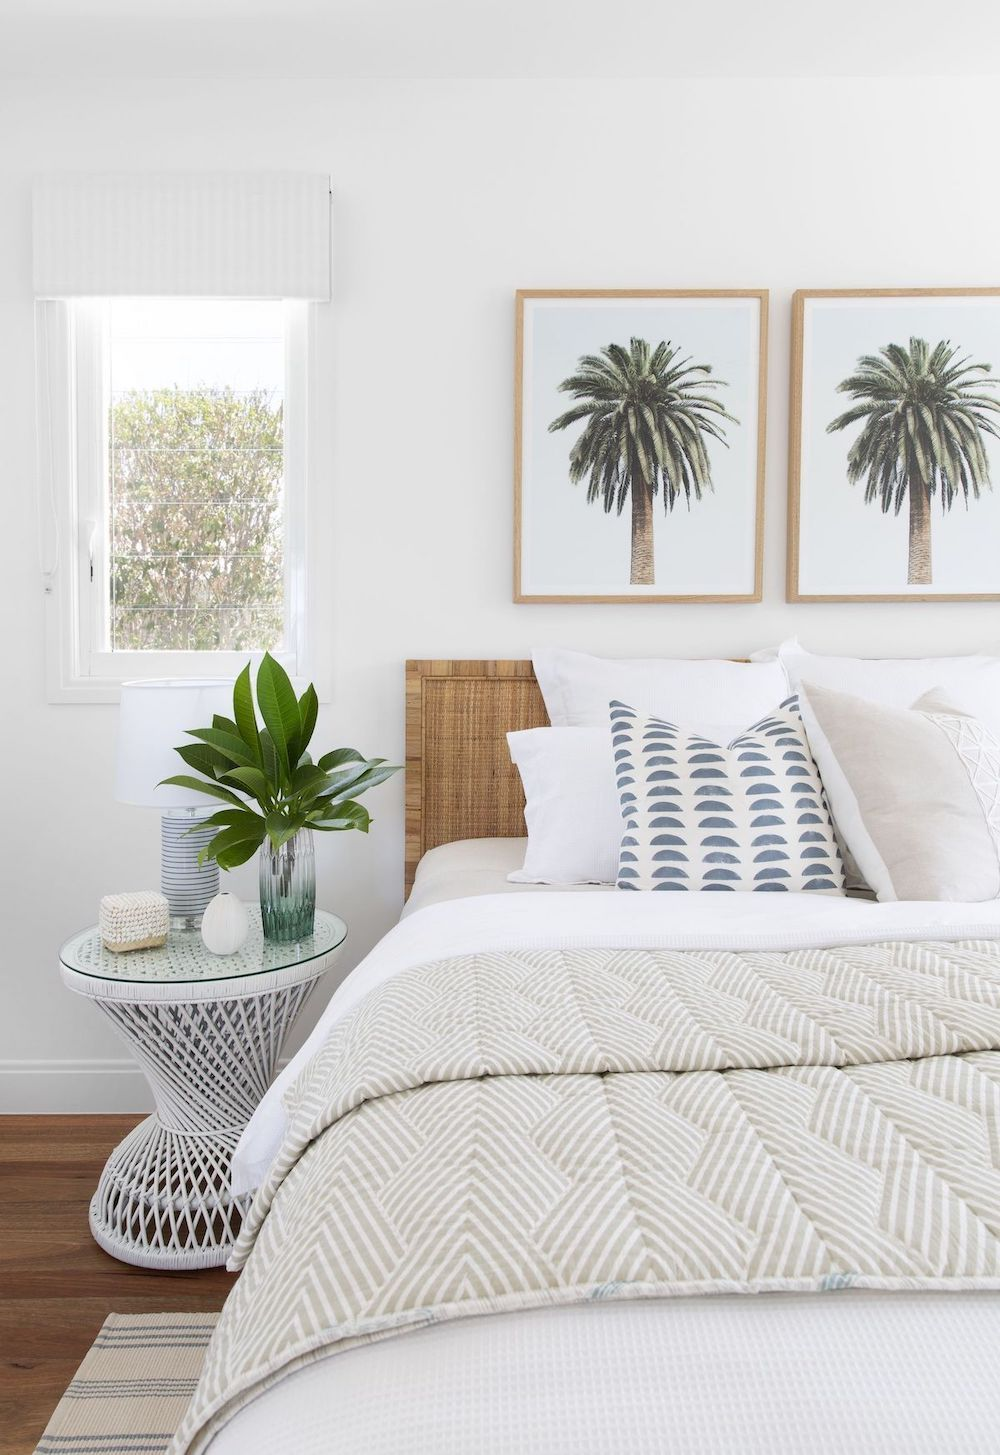 9 Dreamy Coastal Bedrooms to Inspire You #coastalbedrooms